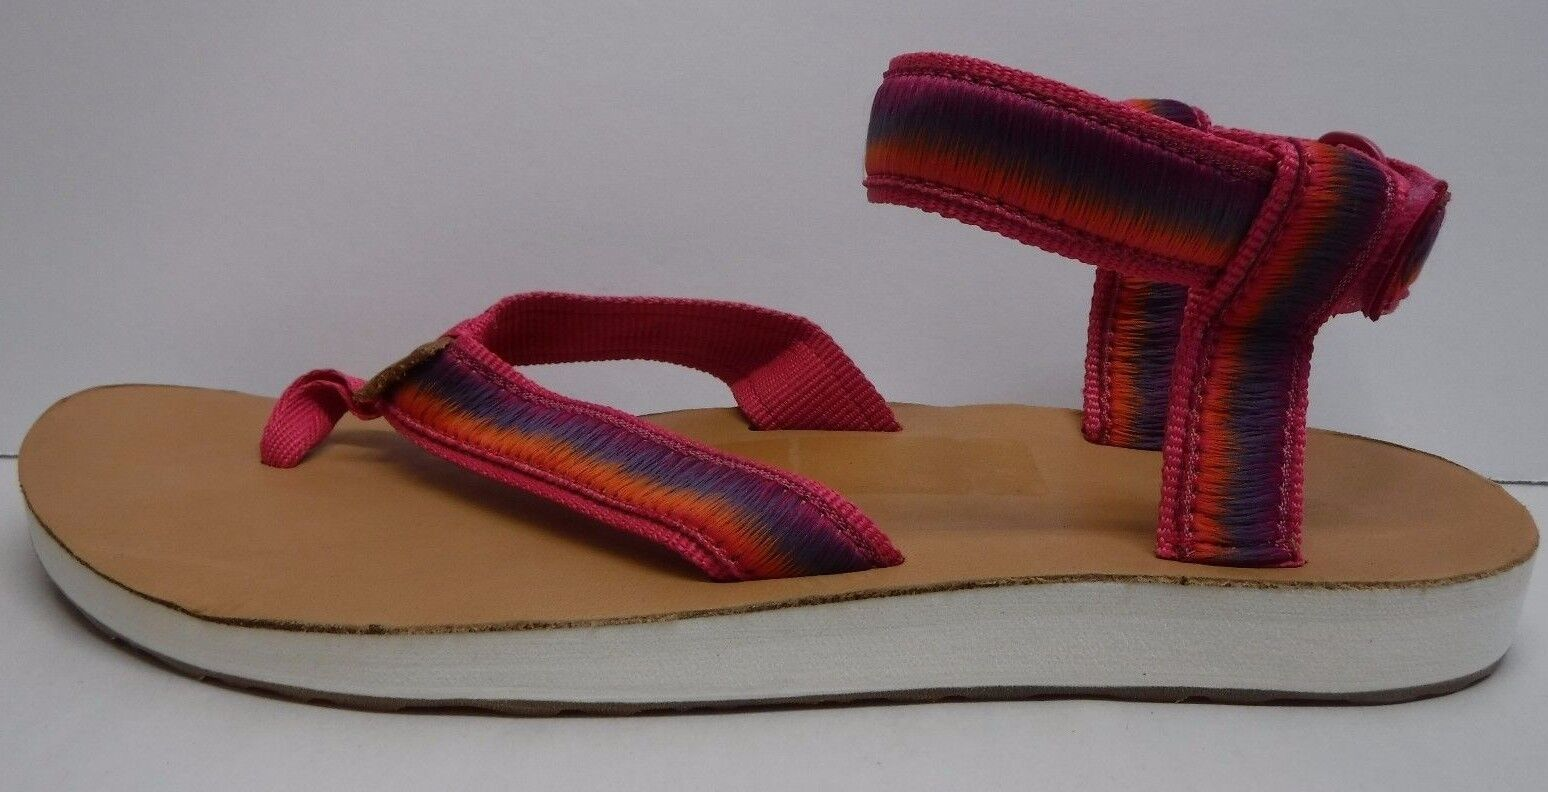 Teva Size 8 Raspberry Sandals New Donna Shoes